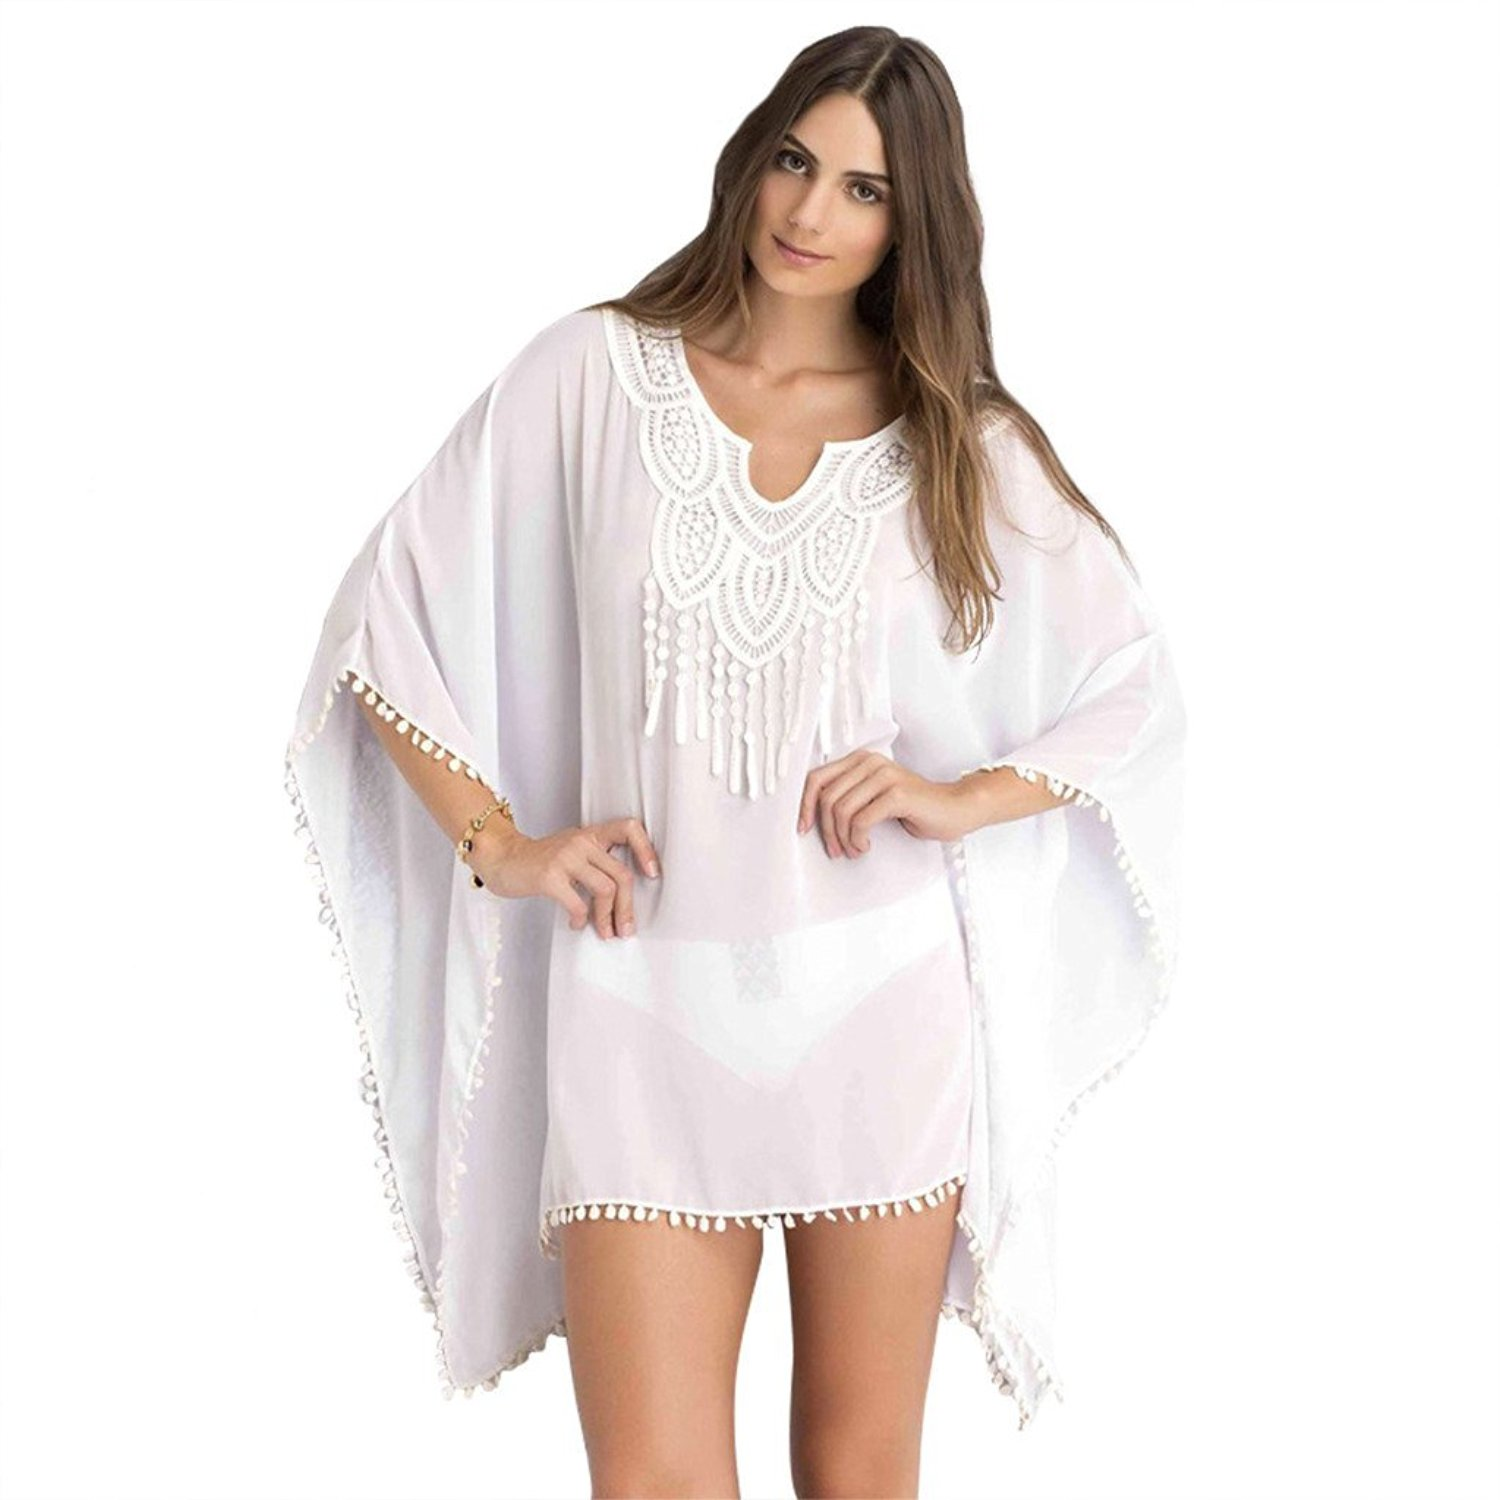 ed45a8a4de Get Quotations · Mose Fashion Crochet Lace Neck Trim Sheer Chiffon Kaftan /  Swimsuit Cover up-White Color